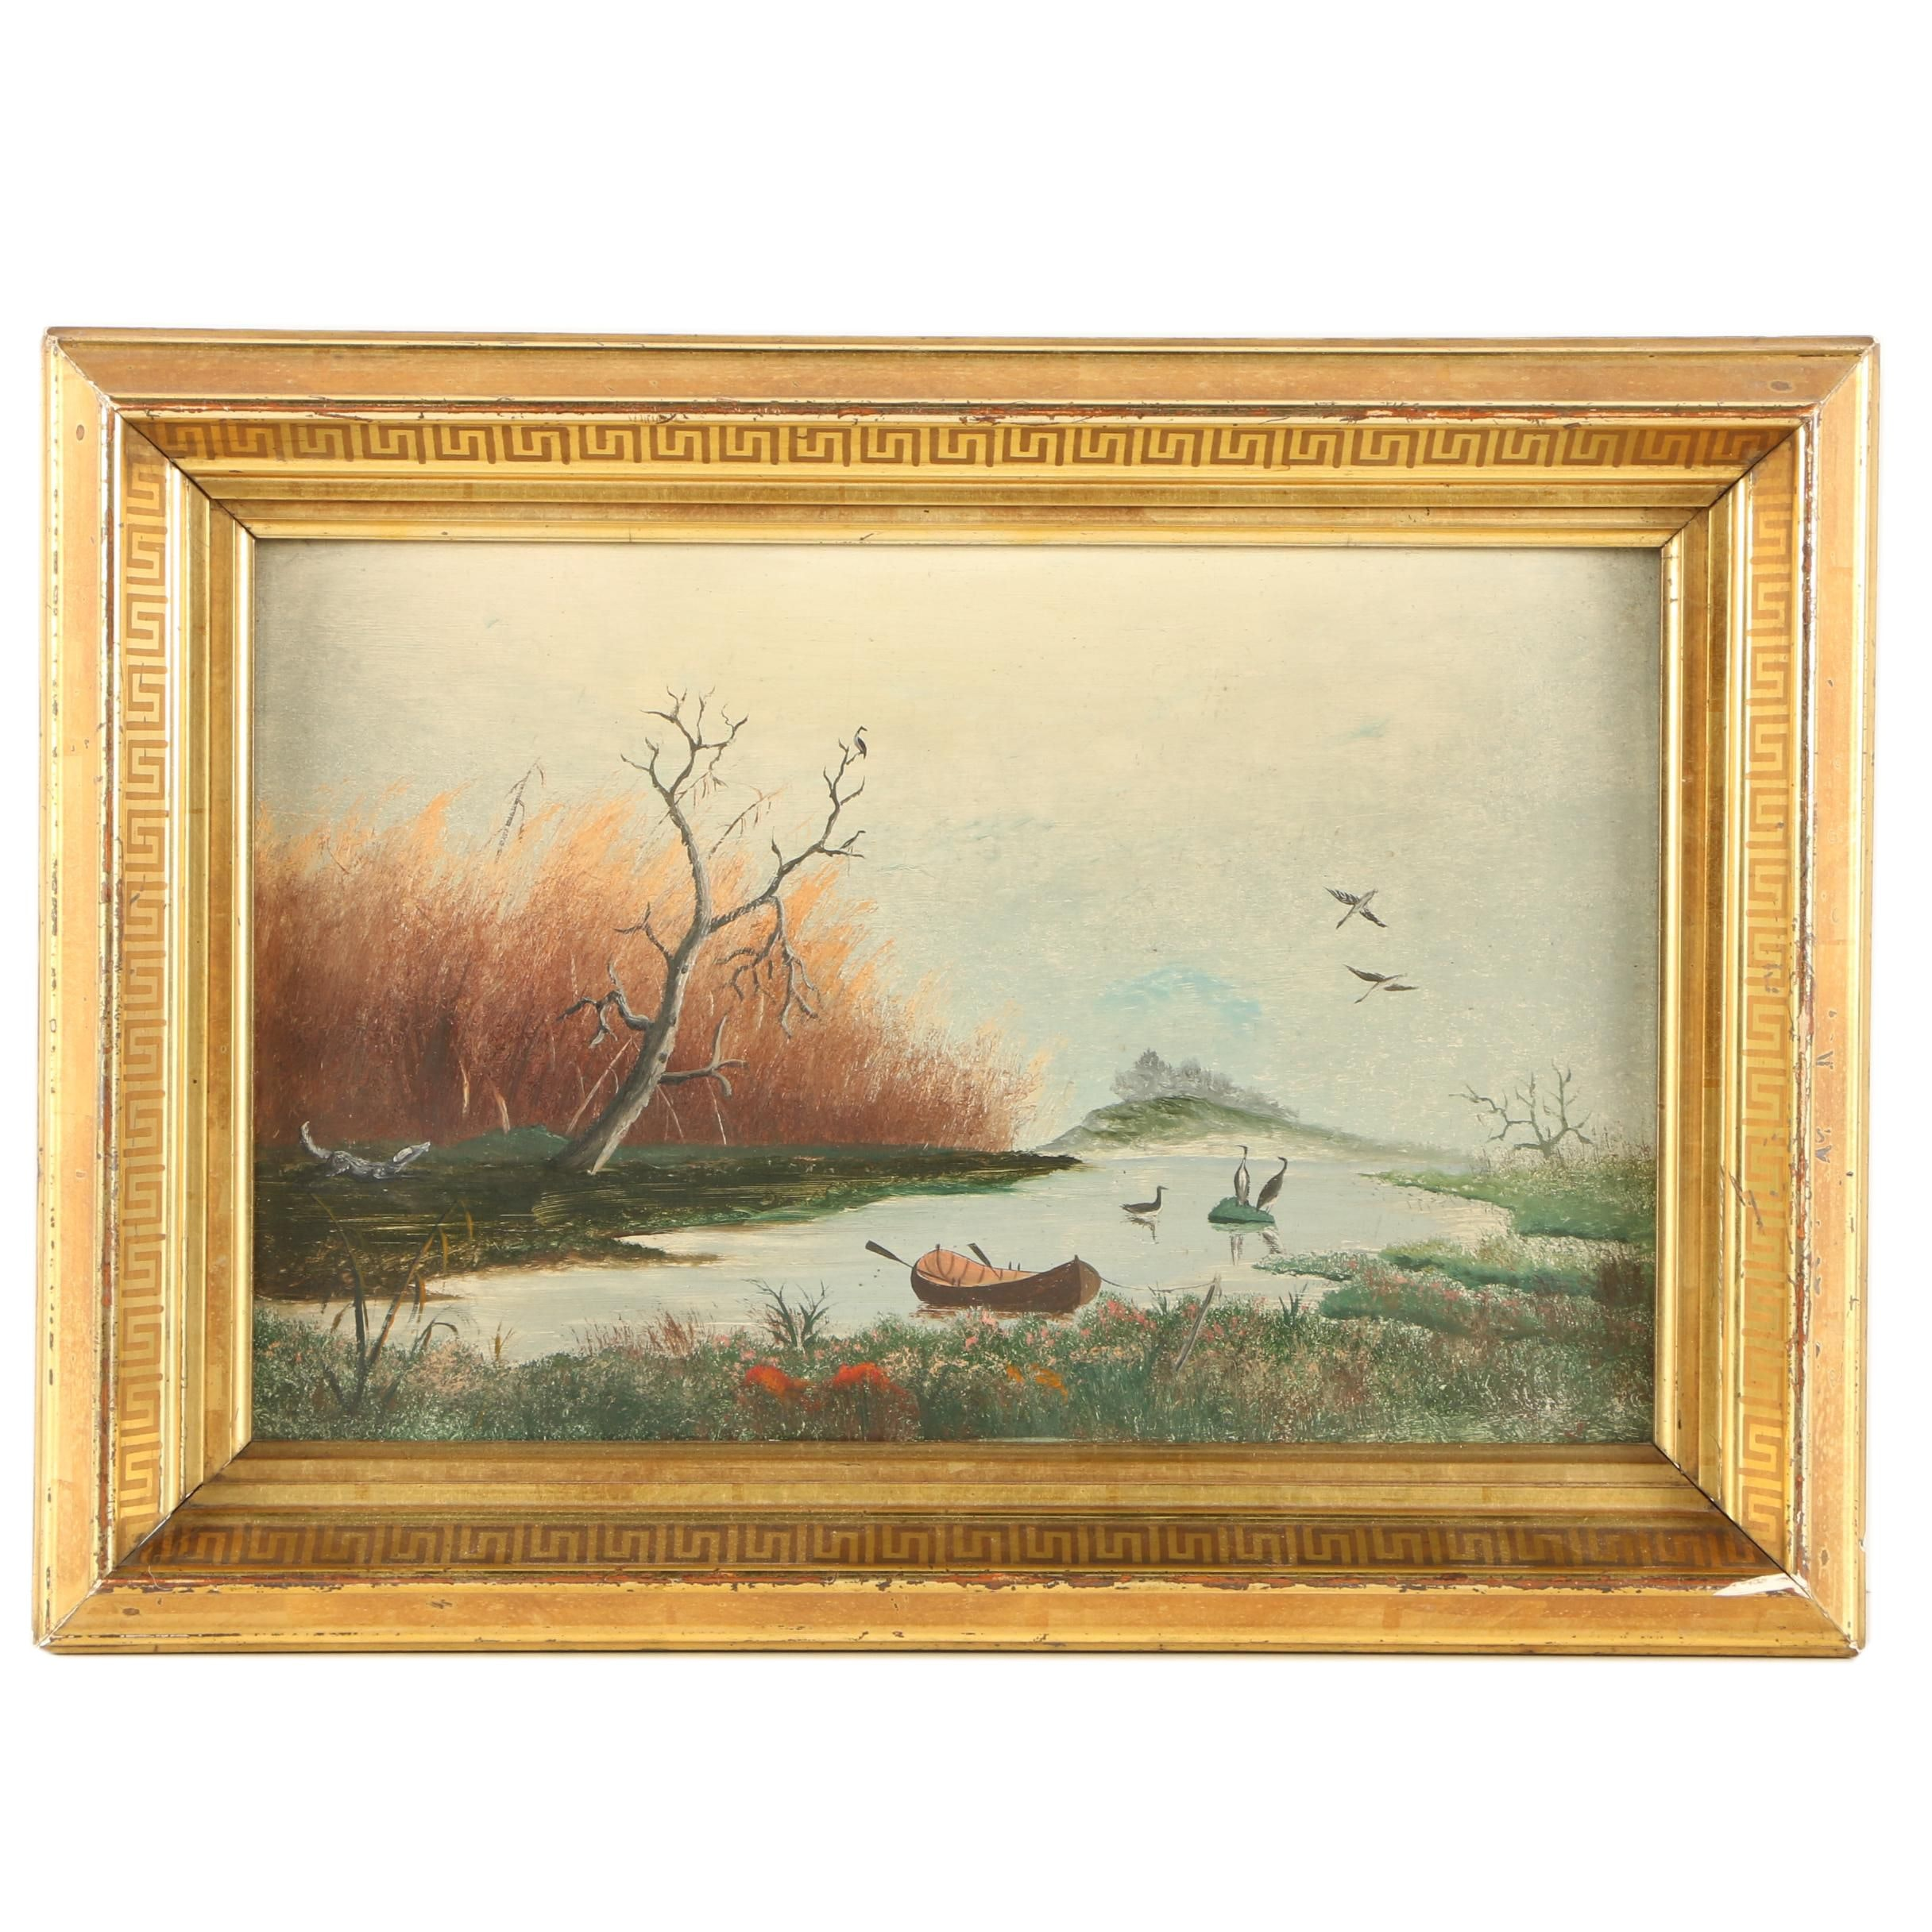 Oil Painting of Boat in a Pond